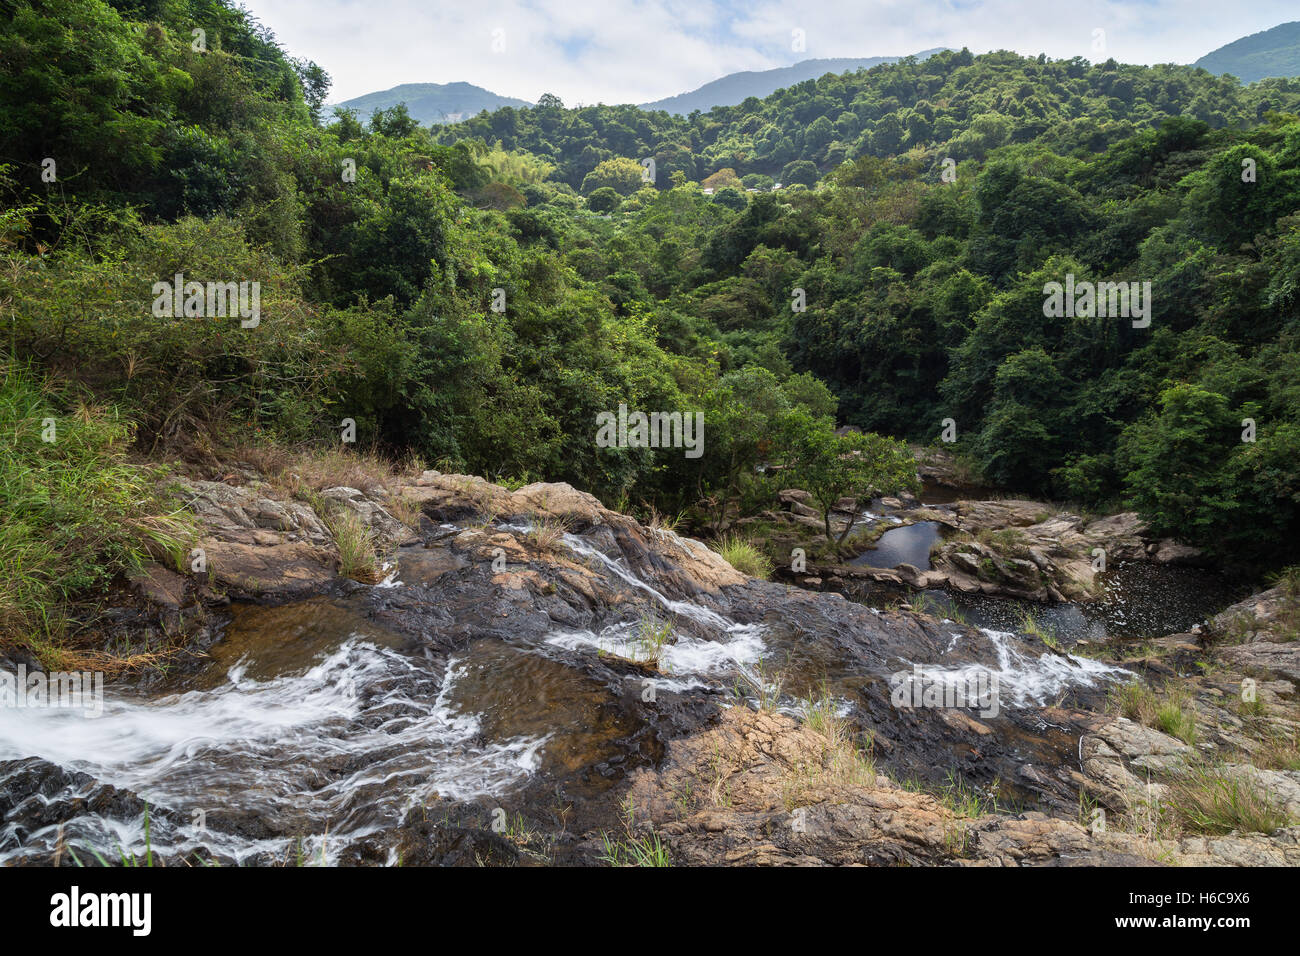 Scenic landscape of and from the Silvermine Waterfalls on the Lantau Island in Hong Kong, China. - Stock Image